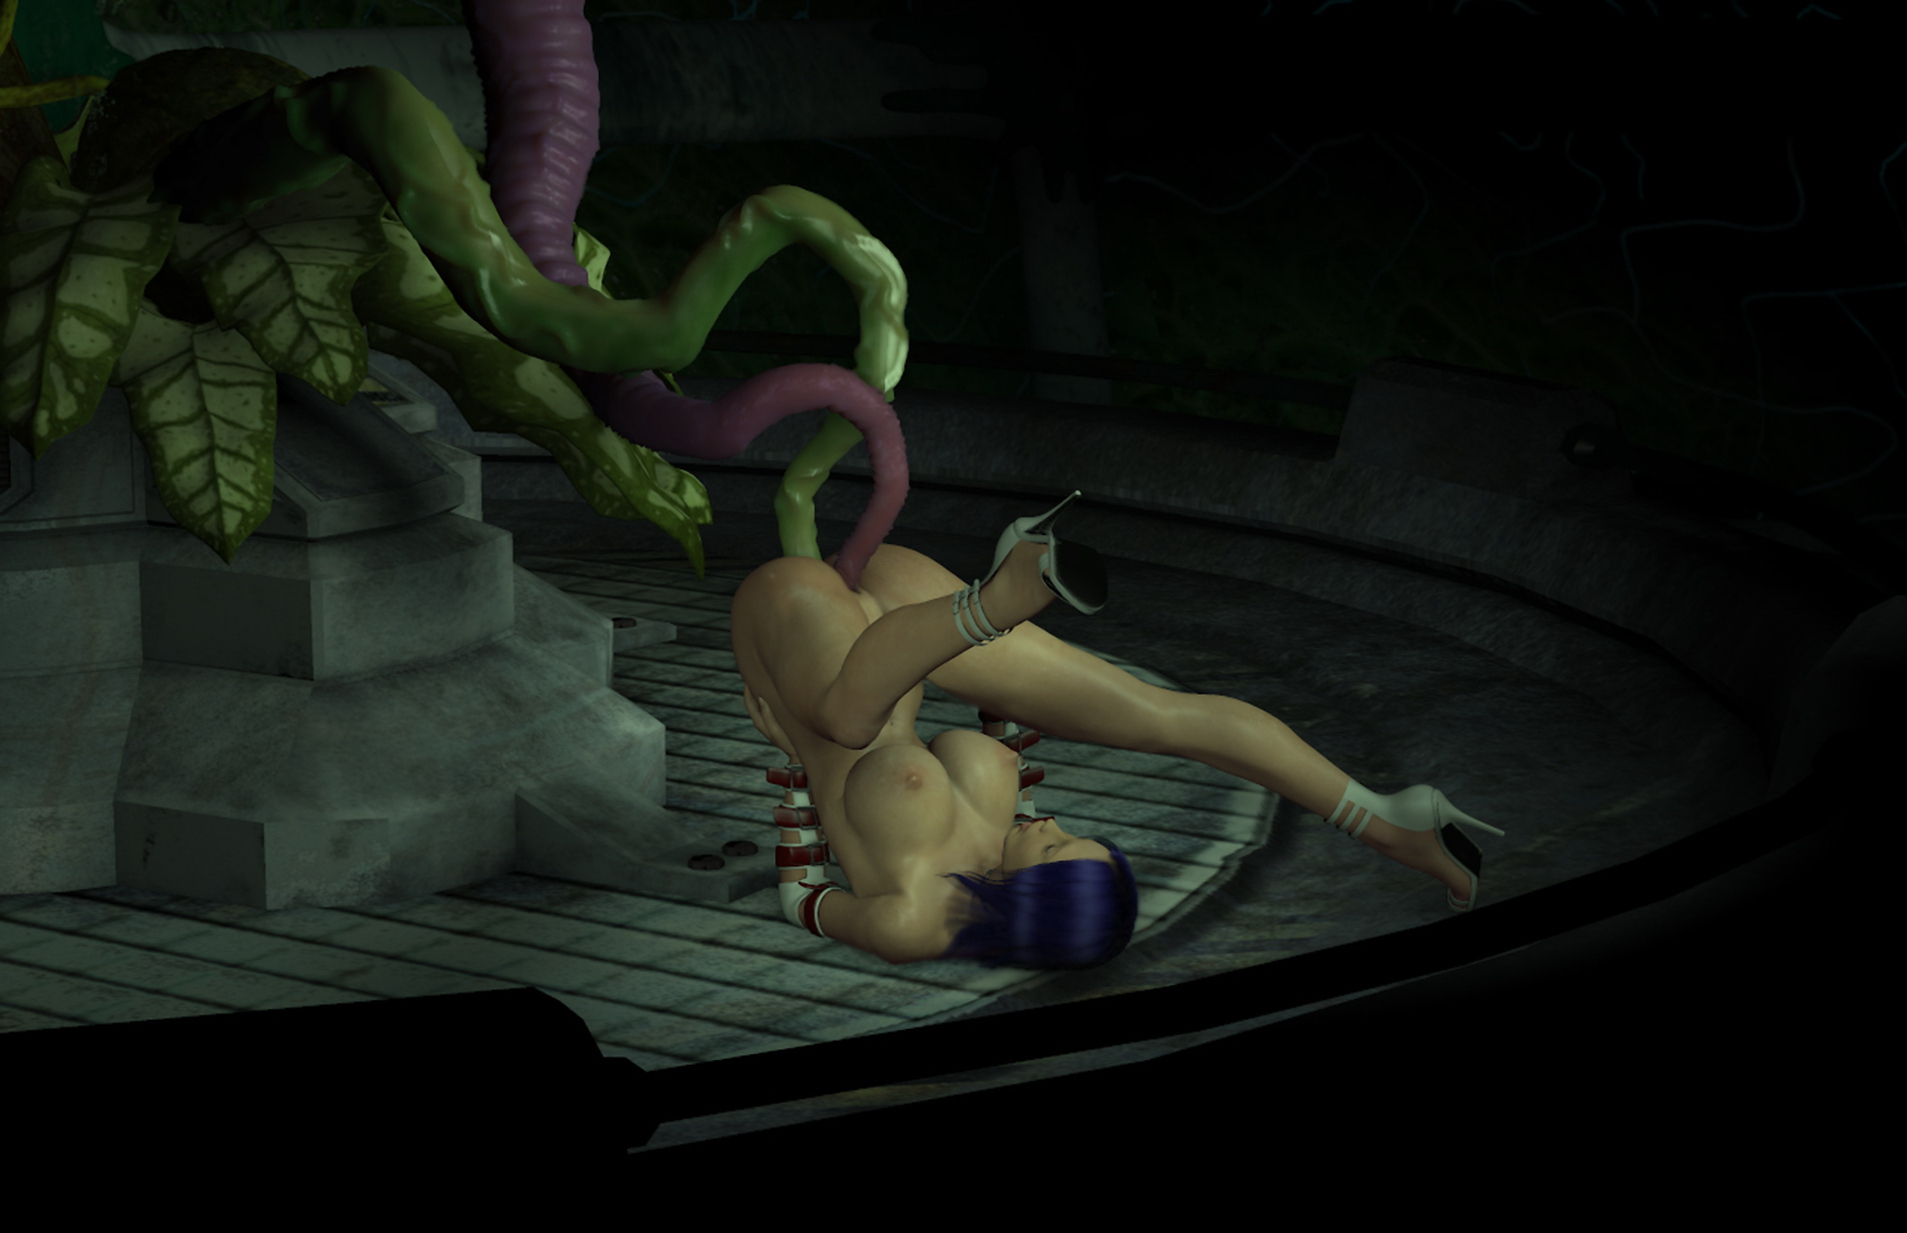 3d elf monsterporn full albums adult picture